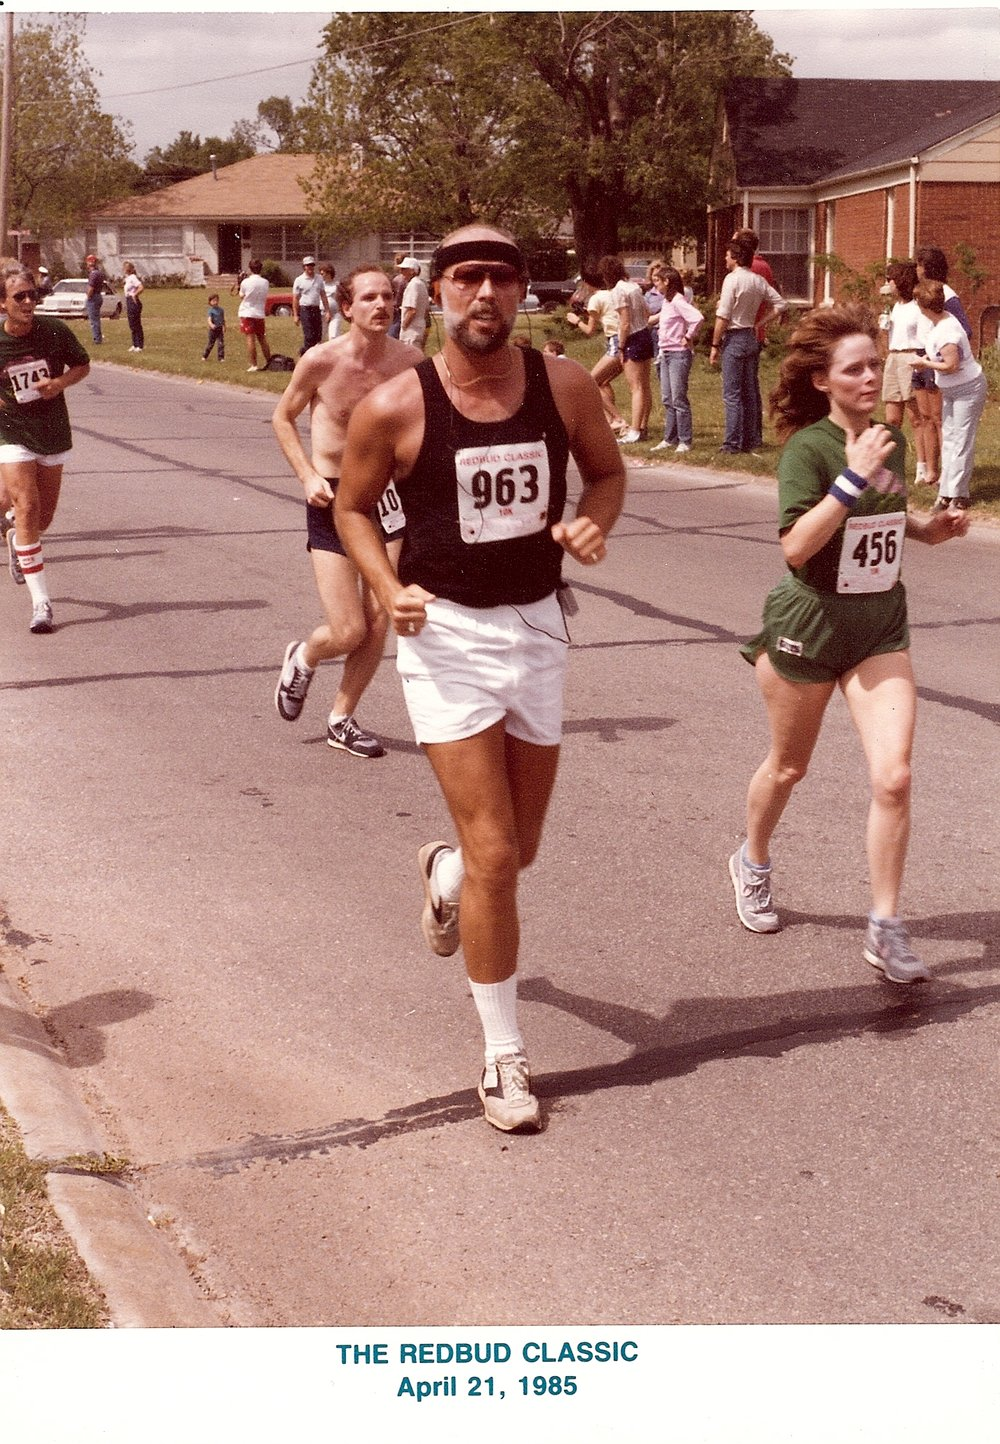 Bob McNeil - April 21, 1985 - Age 36 - Redbud Classic 10K in Oklahoma City, Oklahoma